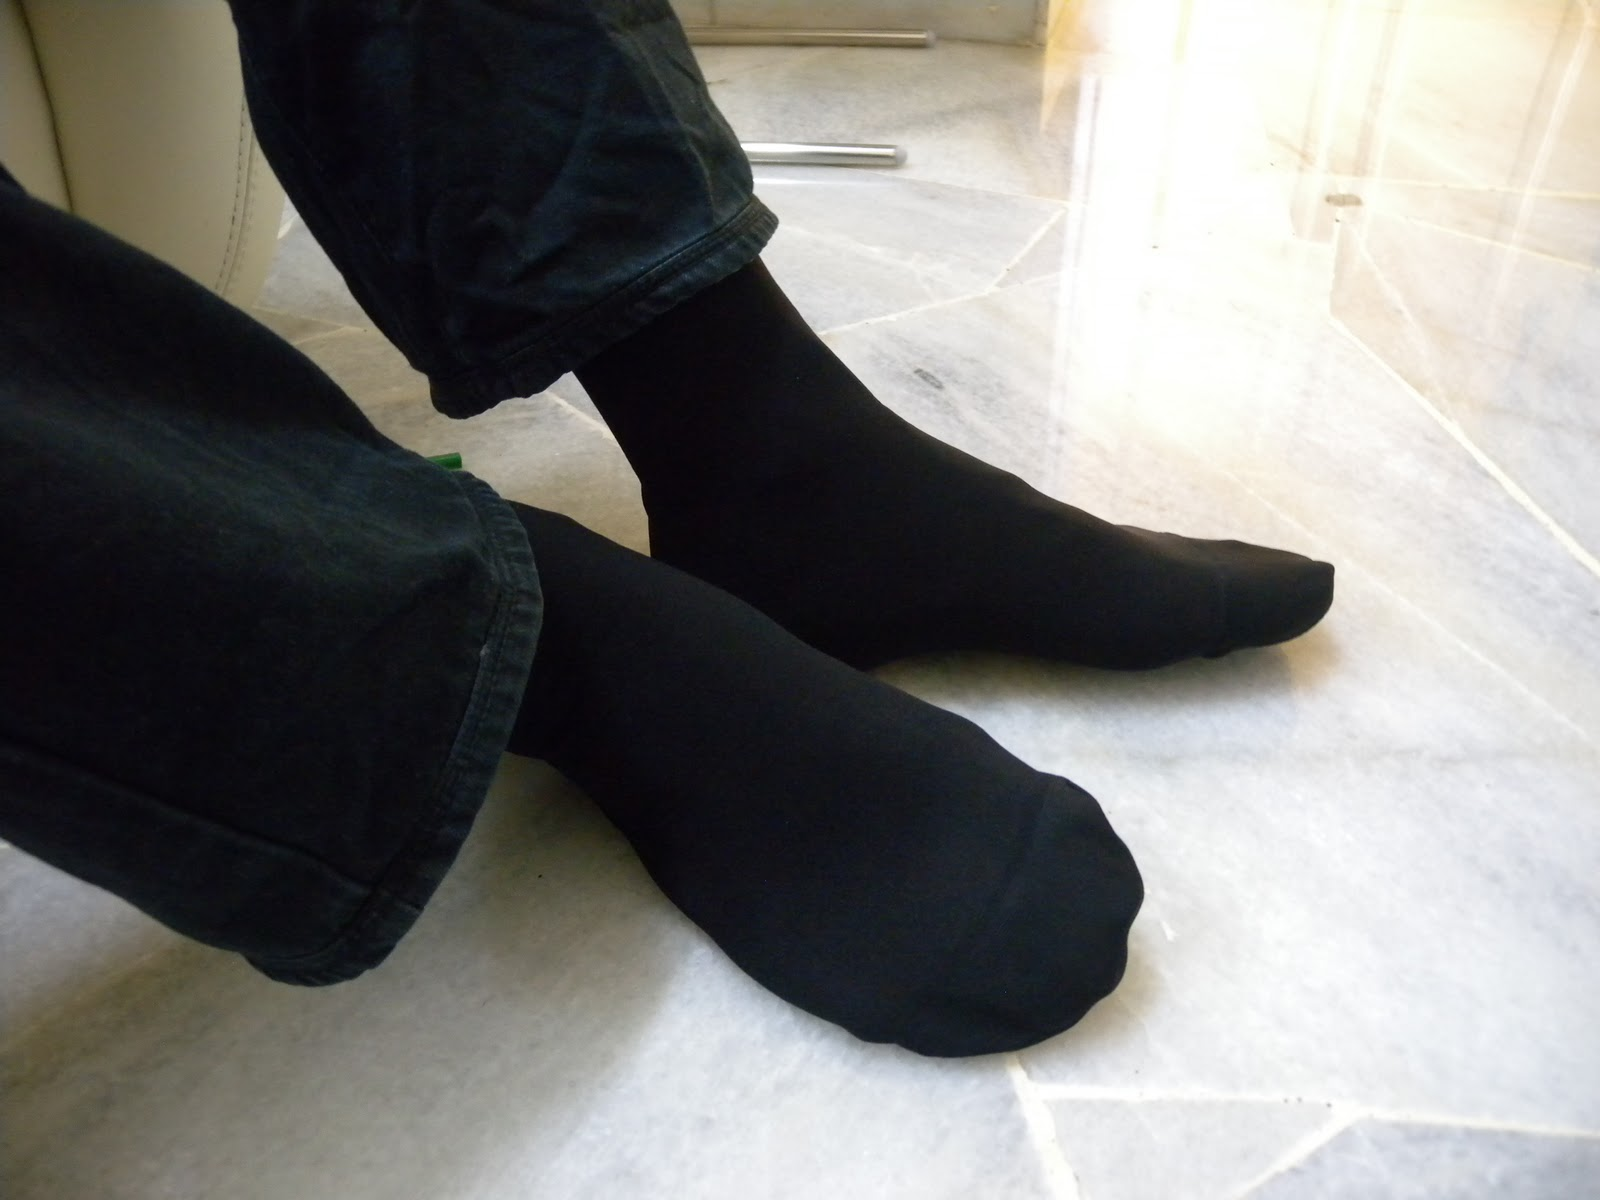 male socks from daily life, internet and film&tvViews: 48K.